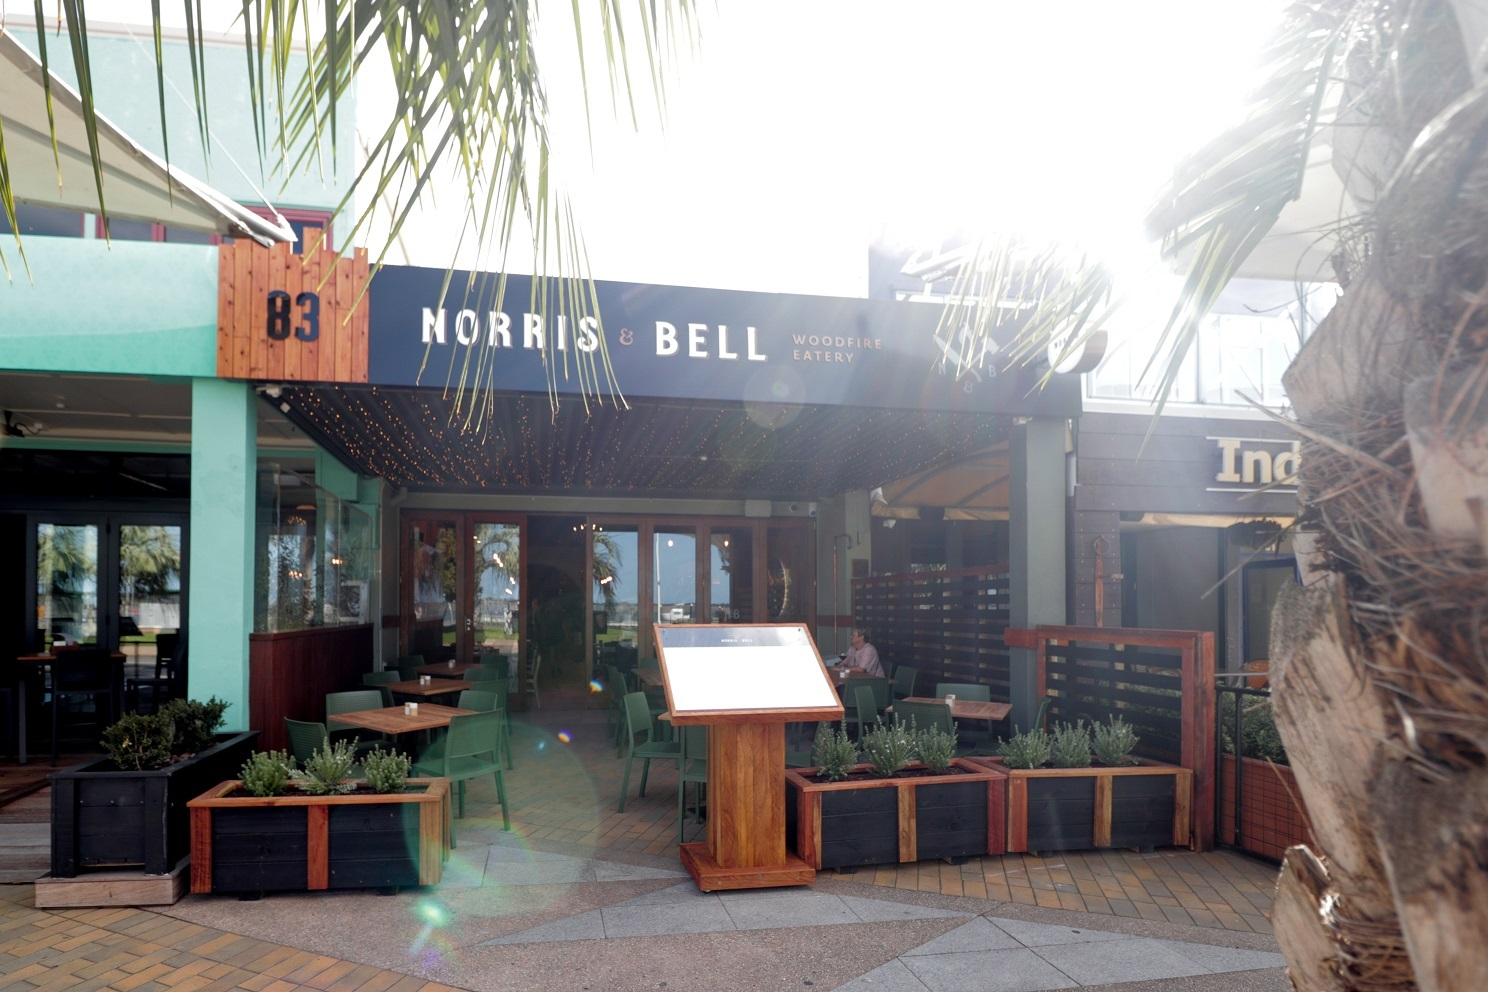 We welcome Norris & Bell Woodfire Eatery to Downtown Taurnaga